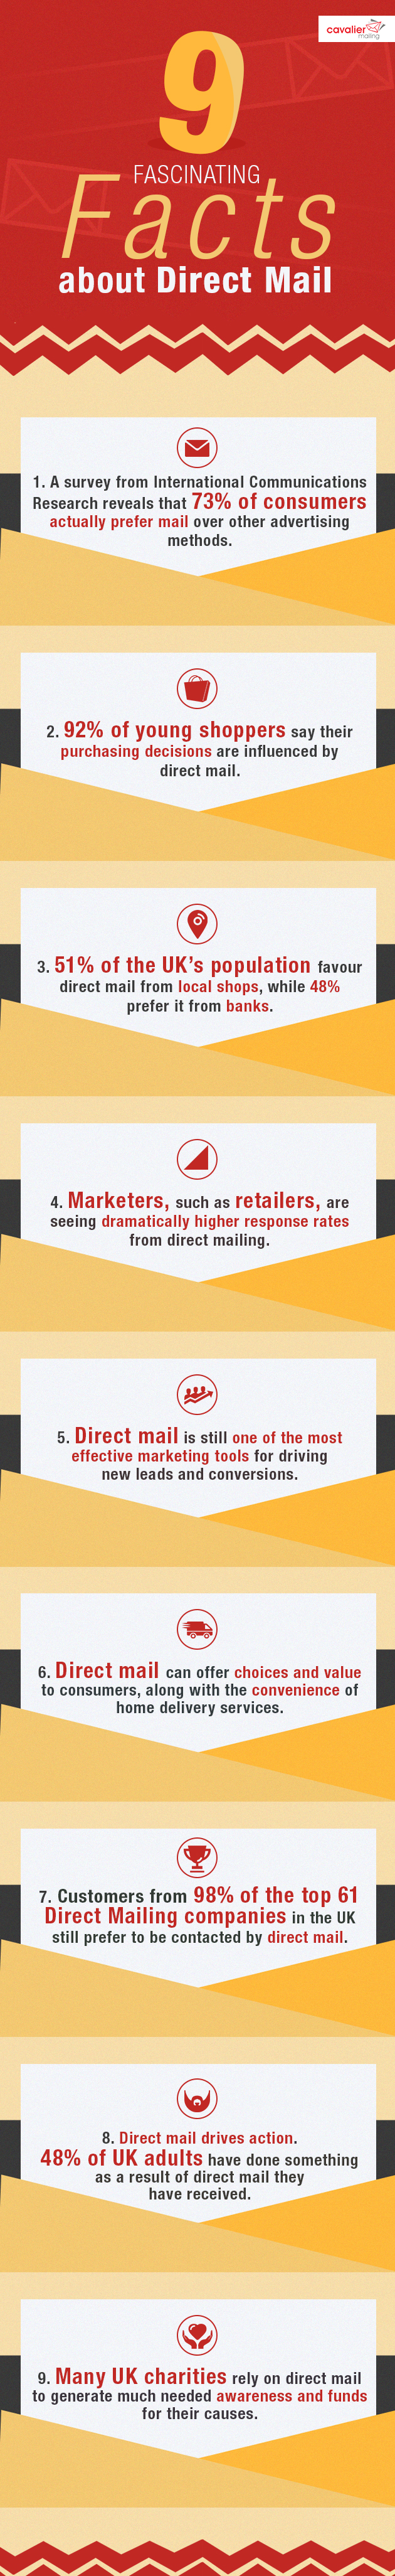 9 Fascinating Facts about Direct Mail